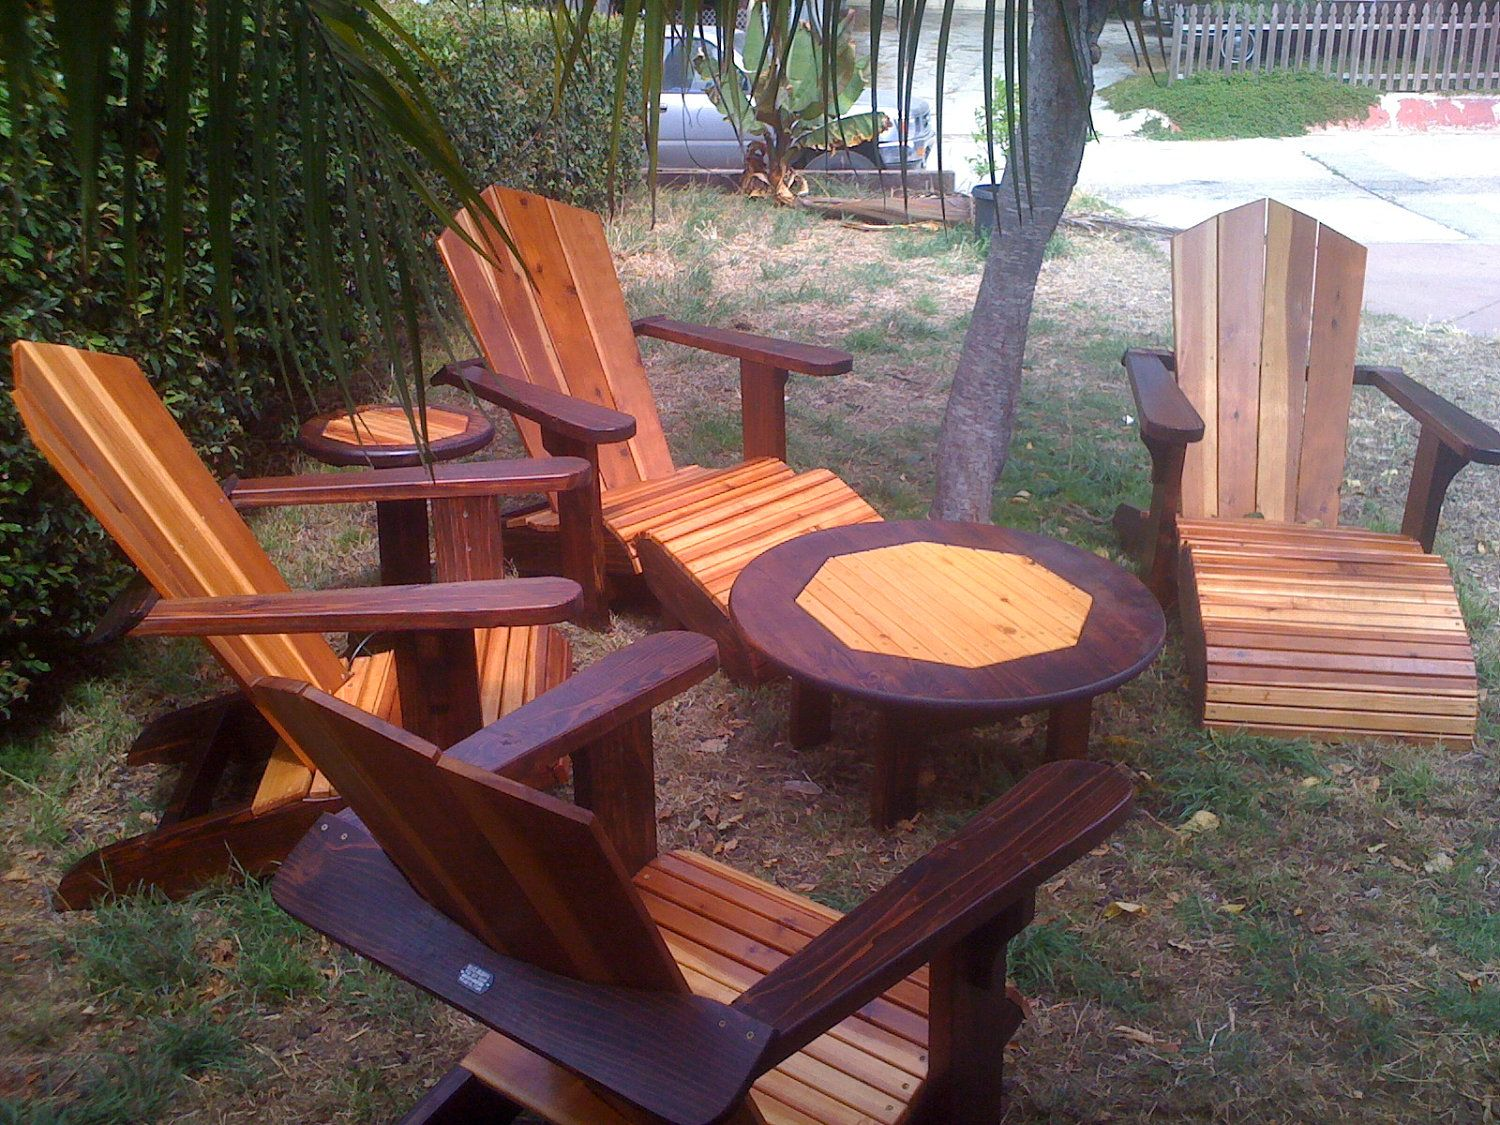 Outdoor Redwood Adirondack Patio Set Lawn Furniture With Chairs, Tables U0026  Ottoman. $1,099.99,